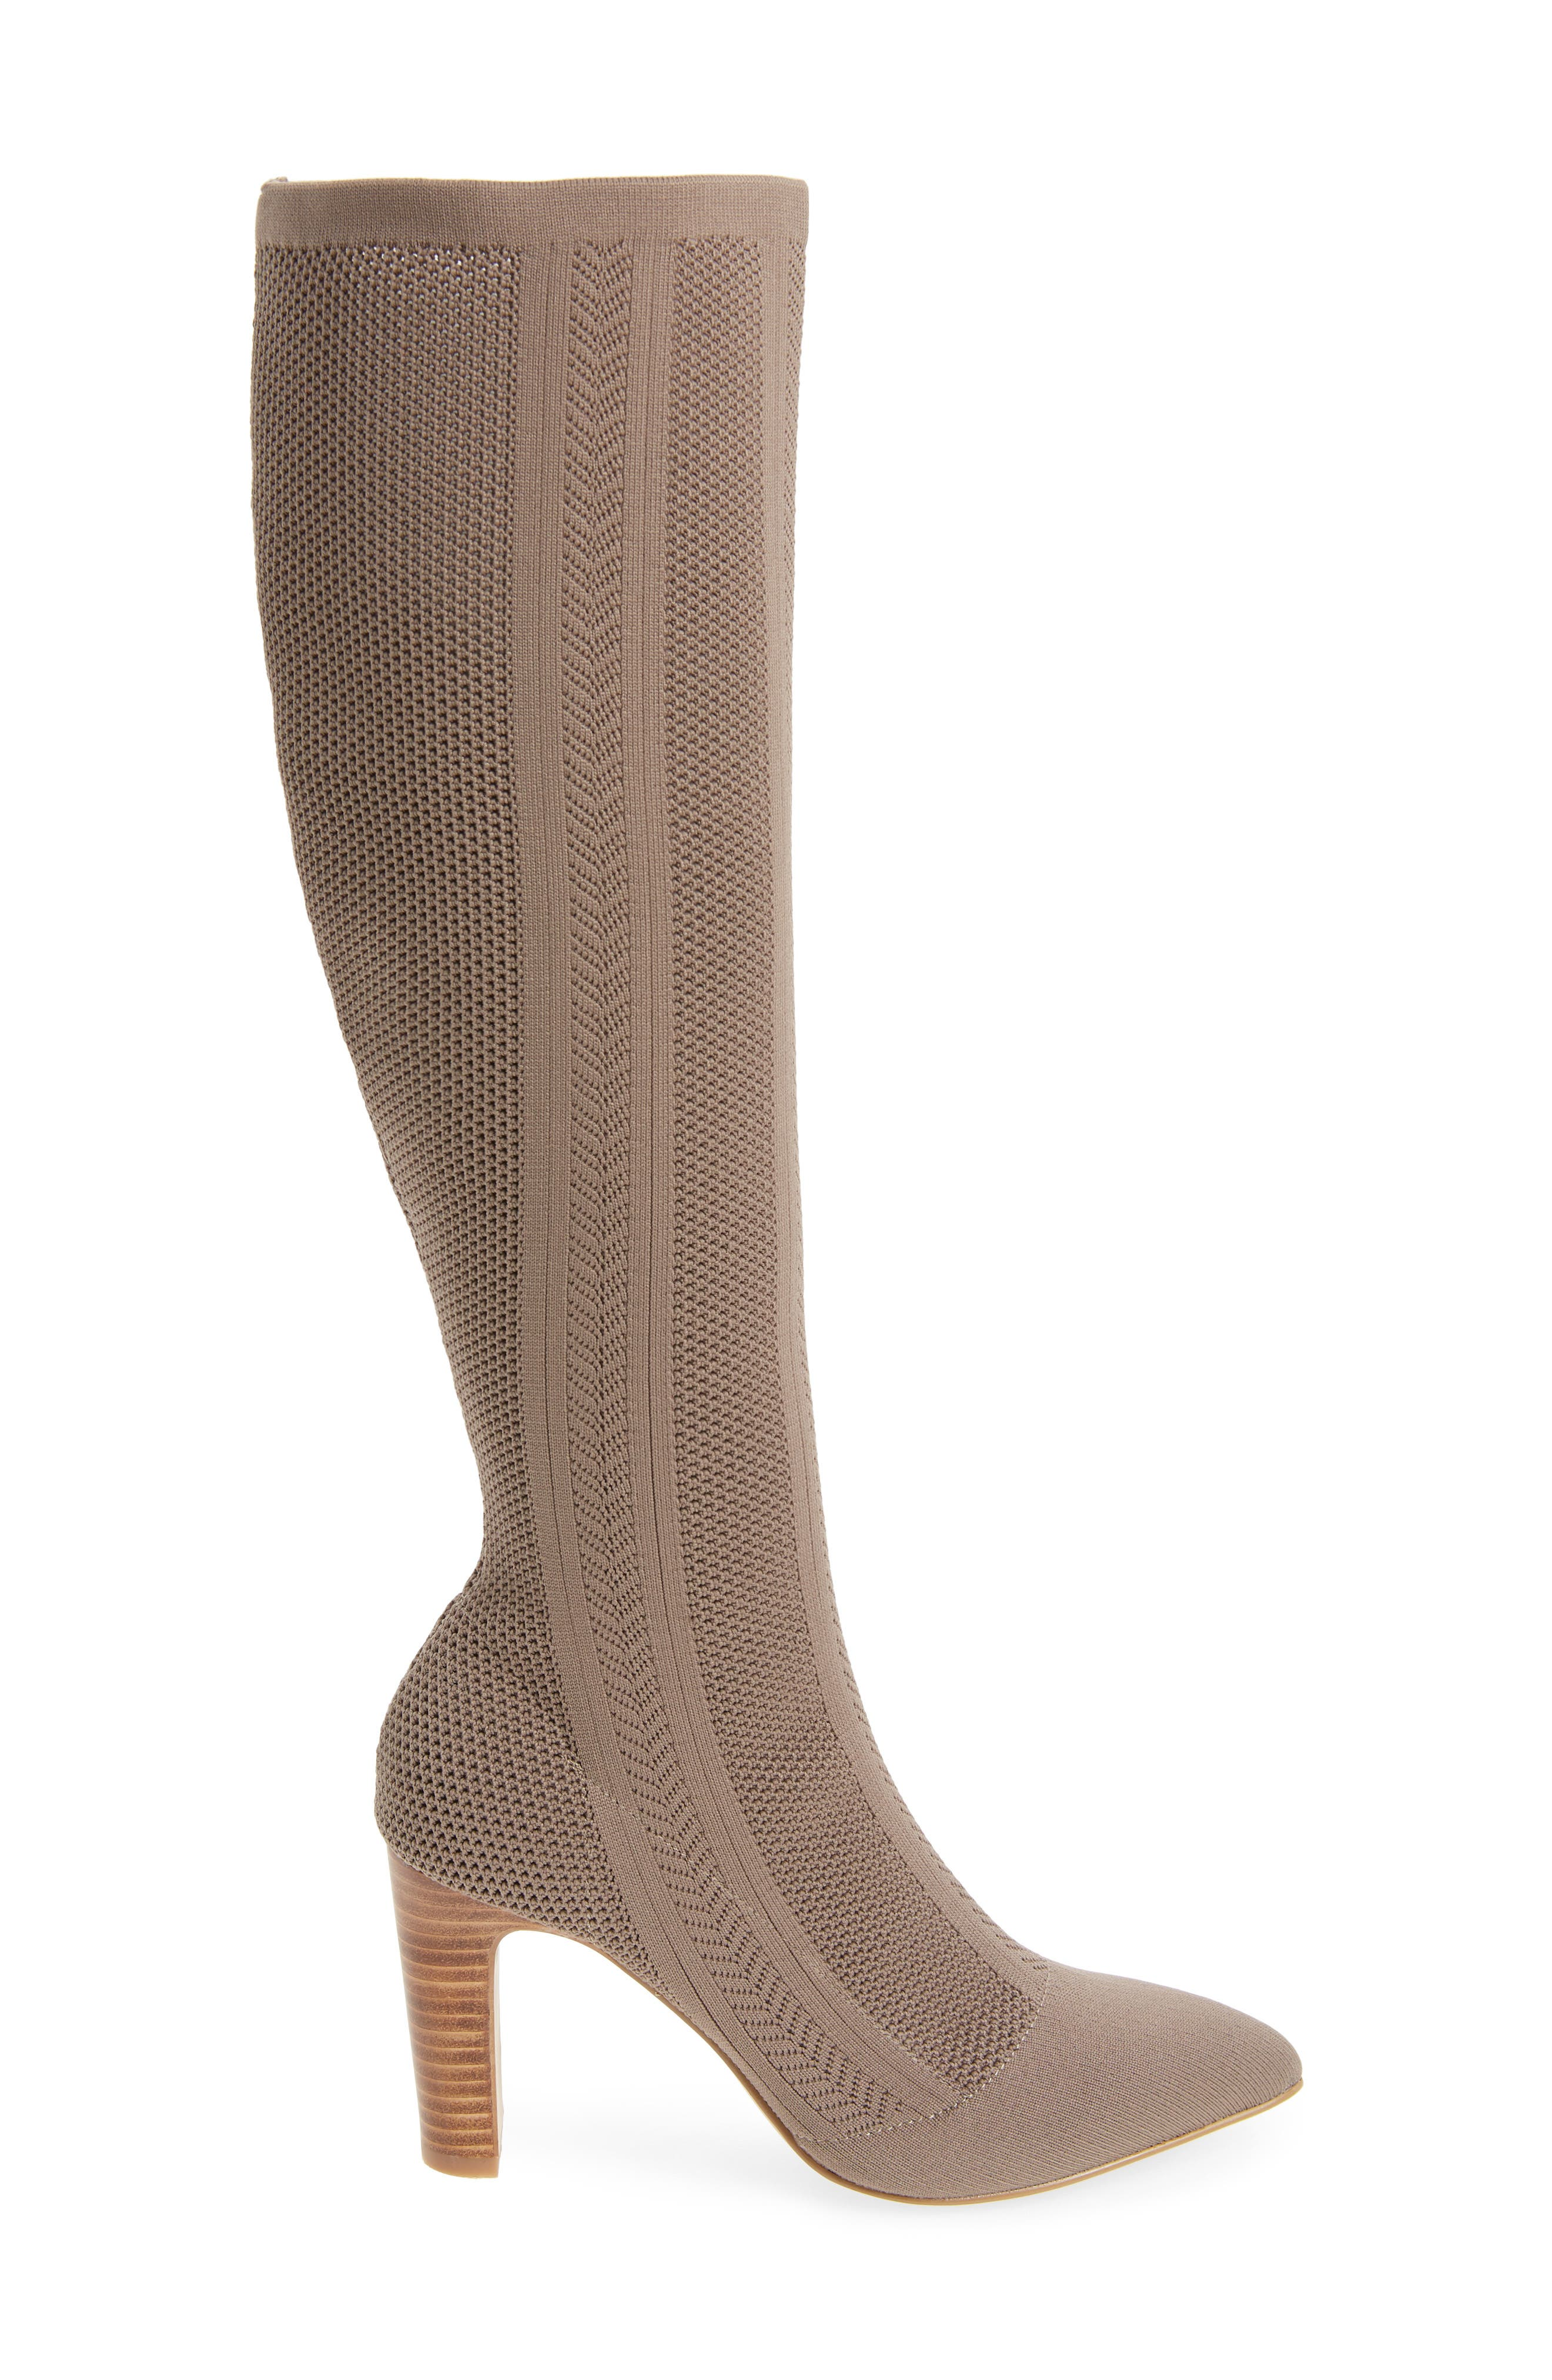 Davis Knit Boot,                             Alternate thumbnail 3, color,                             TAUPE FABRIC